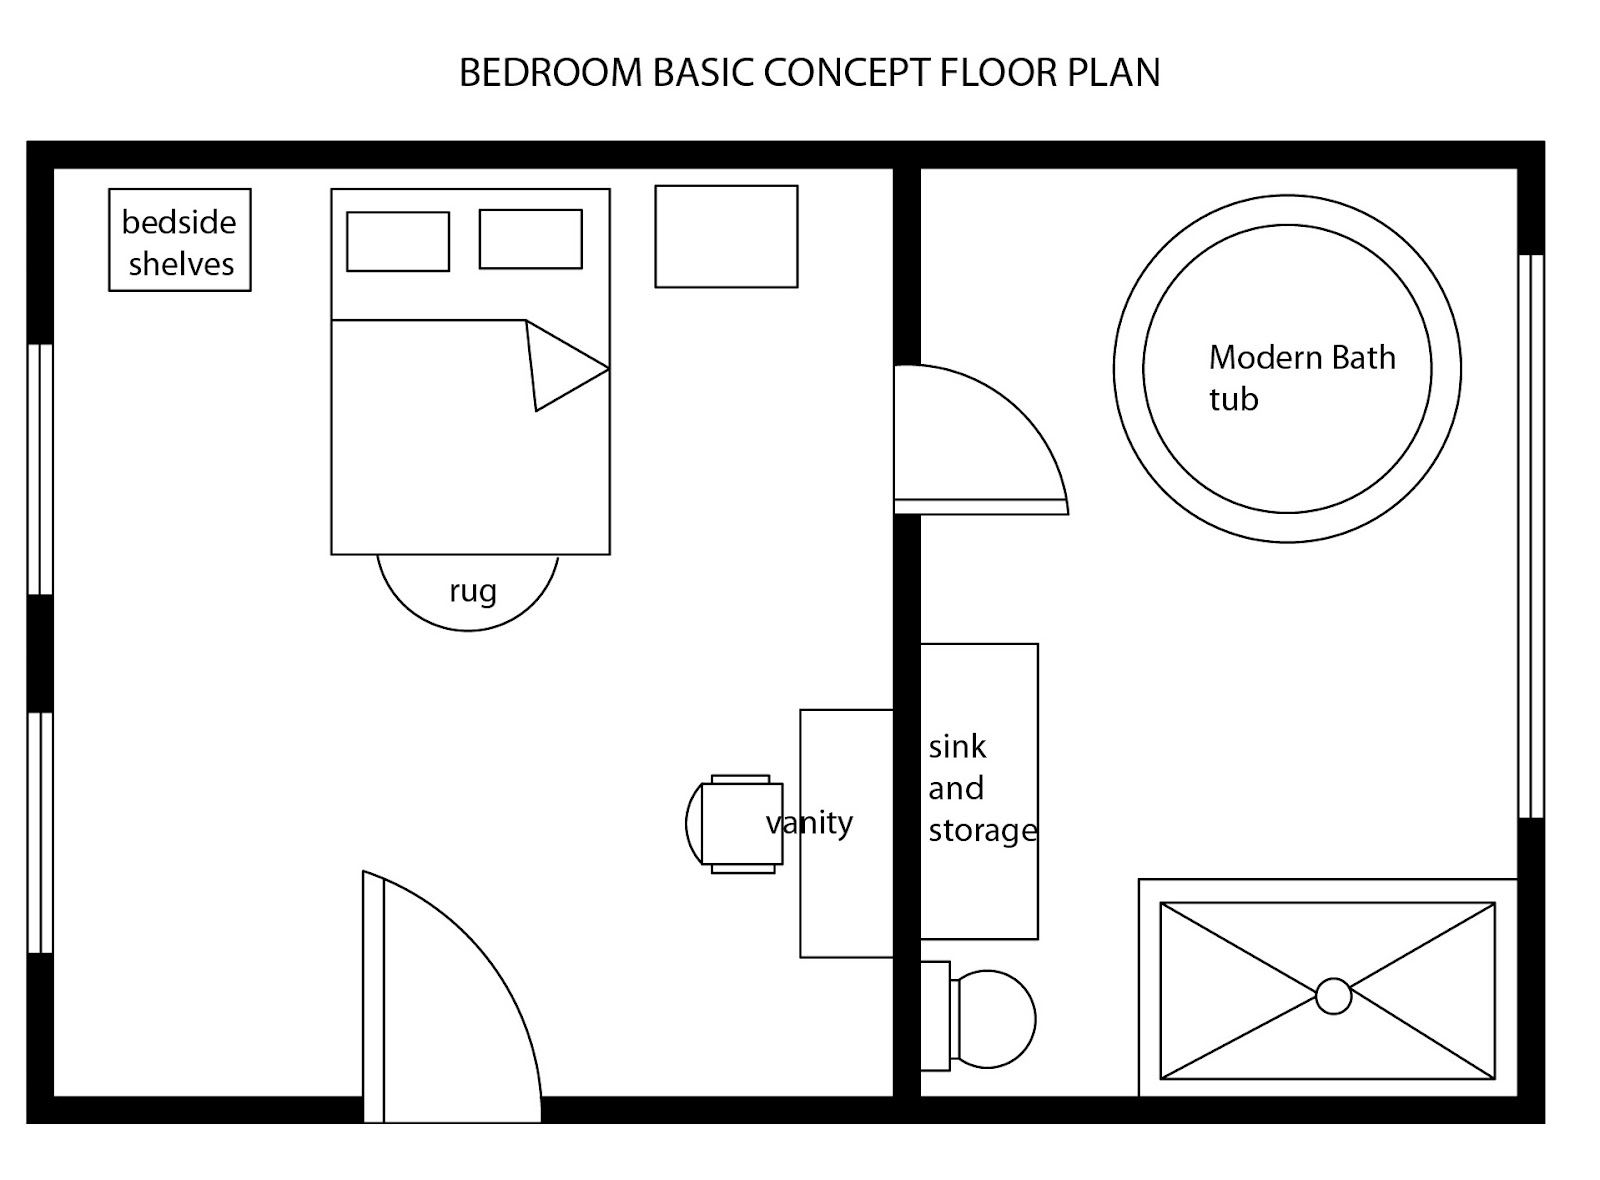 Interior design decor modern bedroom basic floor plan - Bedroom home plan ...